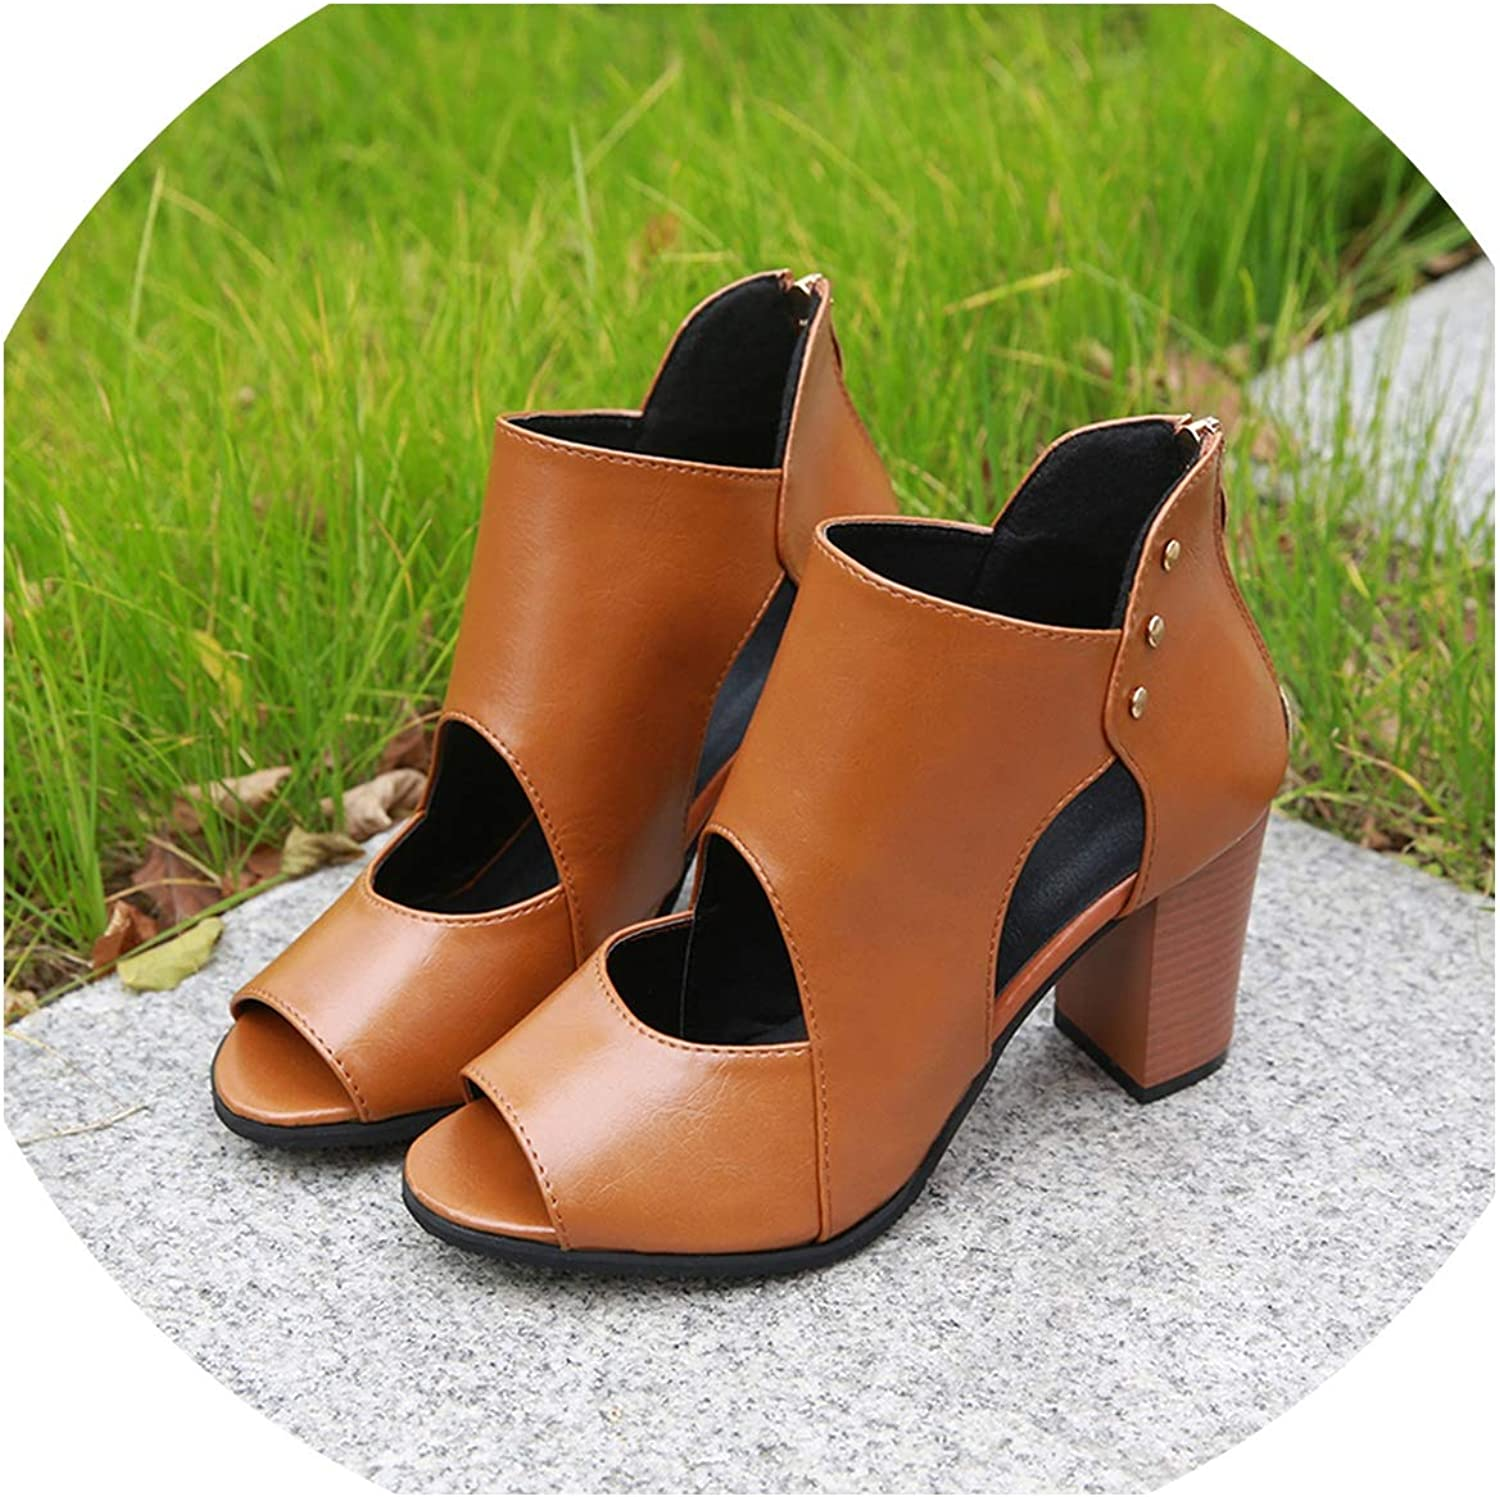 SHINe-Island Sexy Women Sandals Gladiator High Heels Leather Pumps Summer Open Toe Sandalias women Plus Size